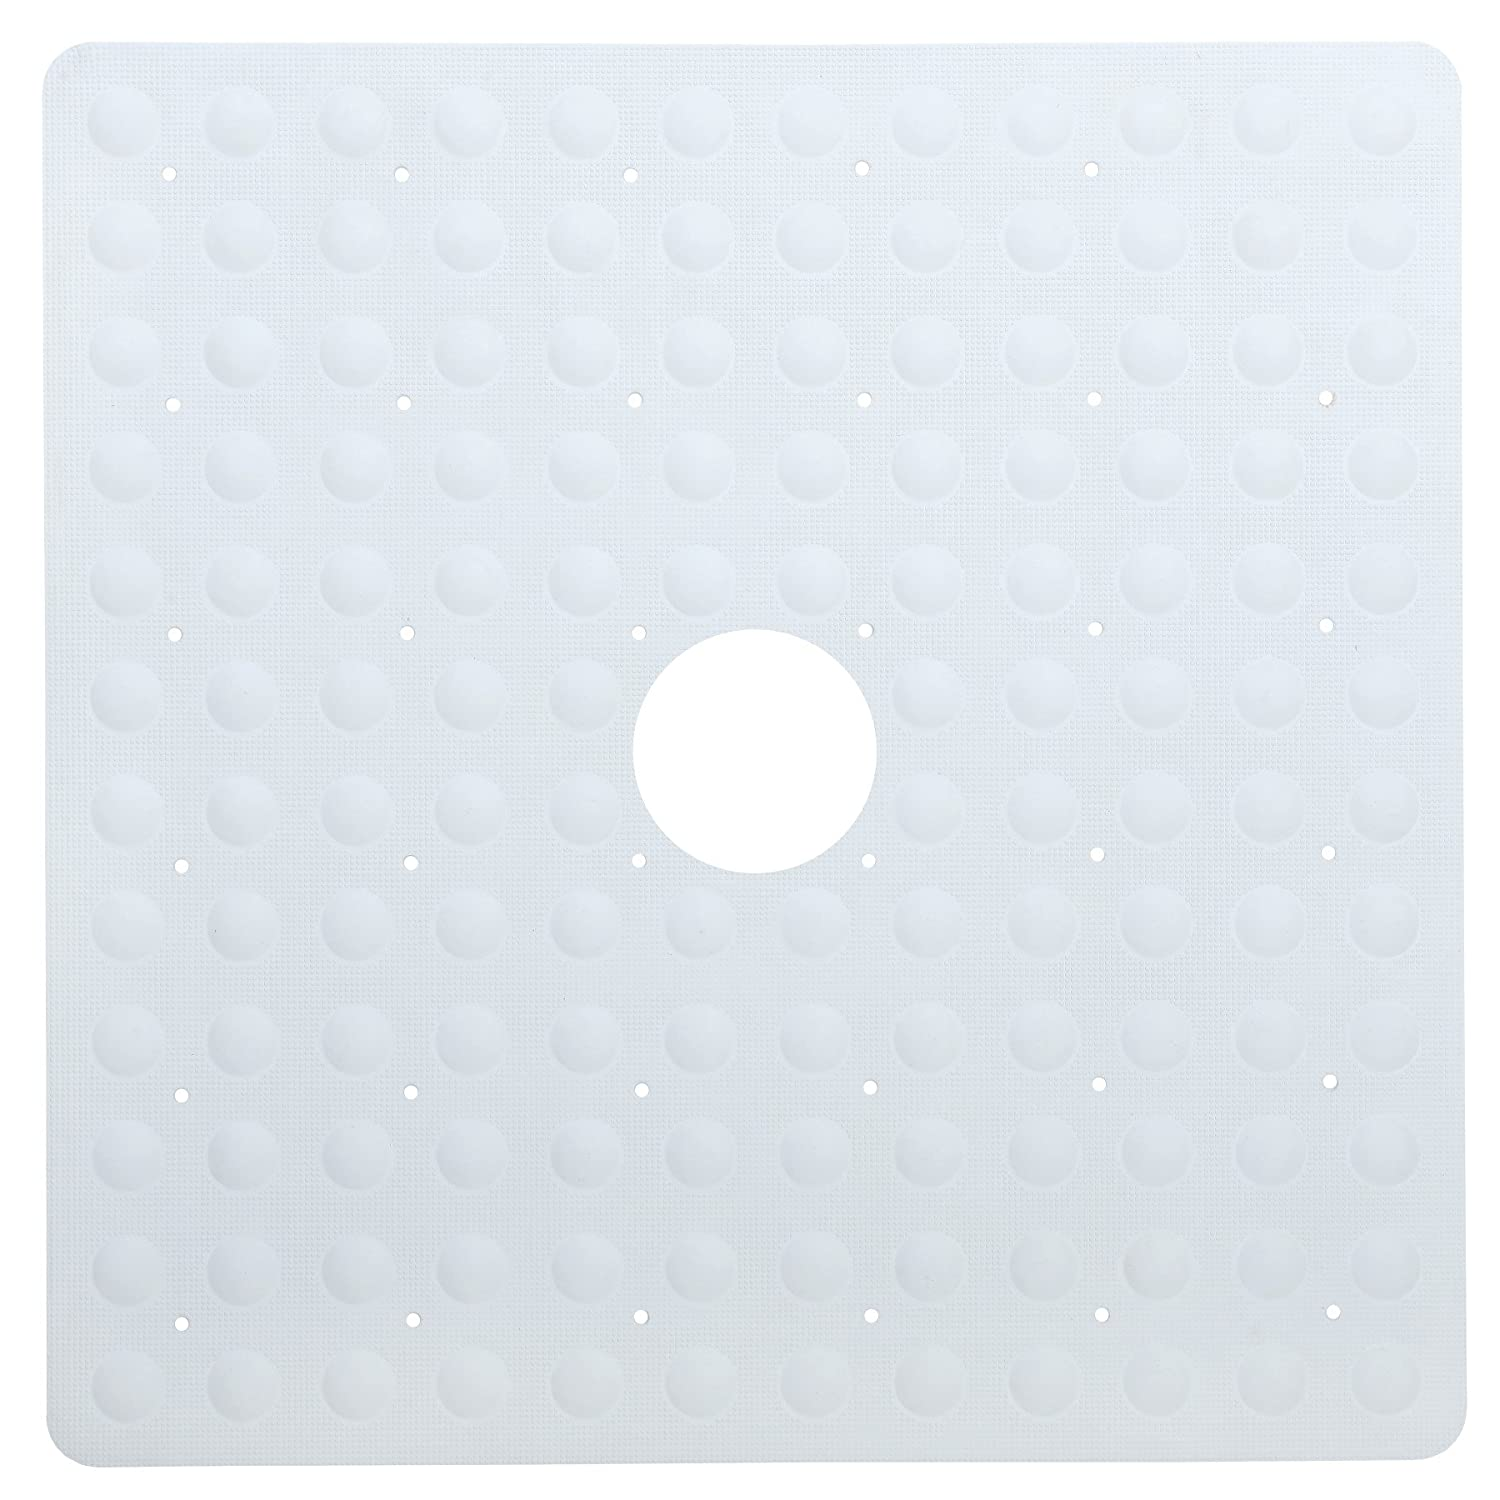 7443bd98f0c11 SlipX Solutions Mildew Resistant Large Tan Rubber Bath Safety Mat Features  Powerful Microban ® Antimicrobial Product Protection  (15 x 27 ...